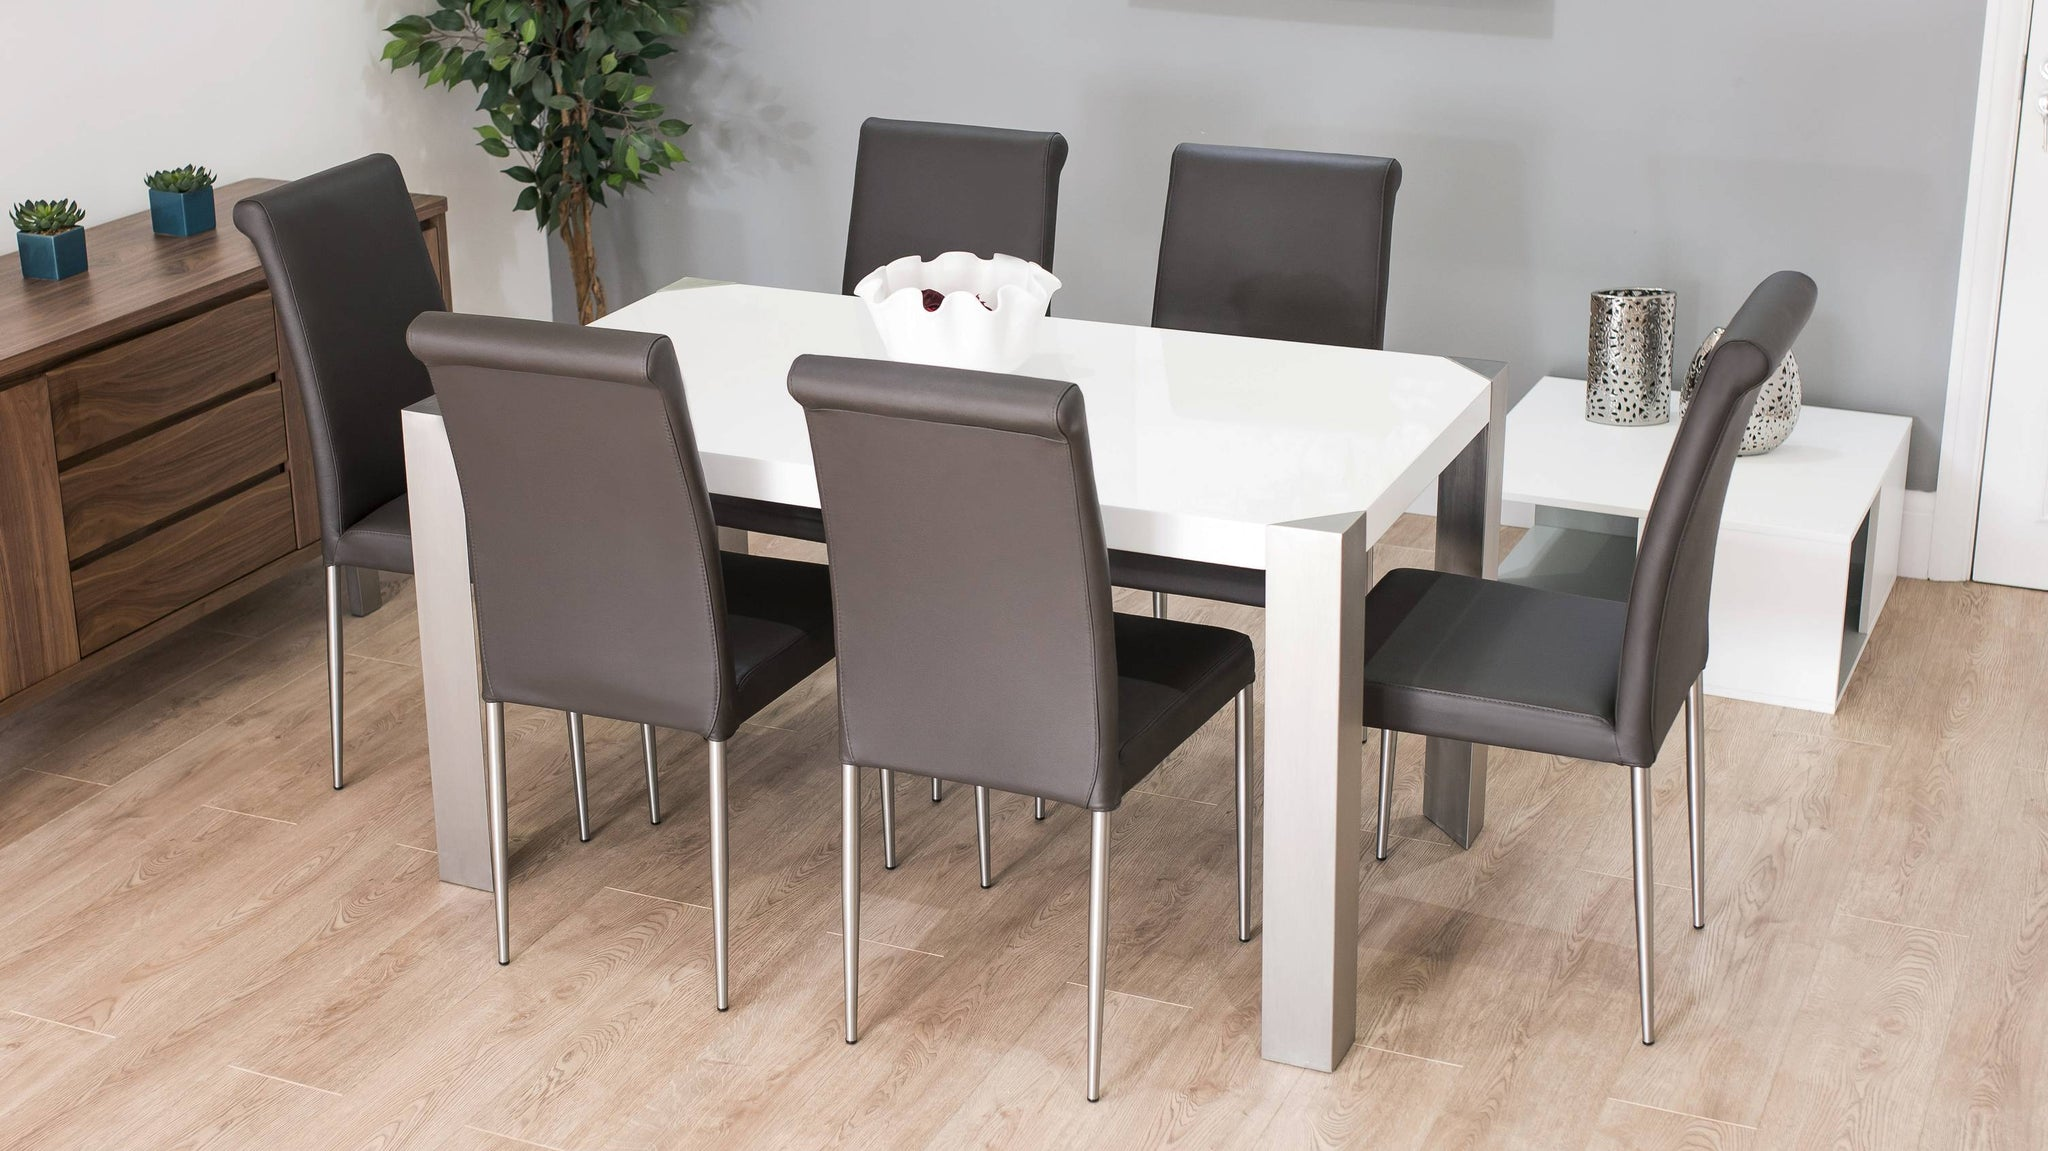 Stylish 4-6 Seater White Gloss Dining Table with Brown Chairs